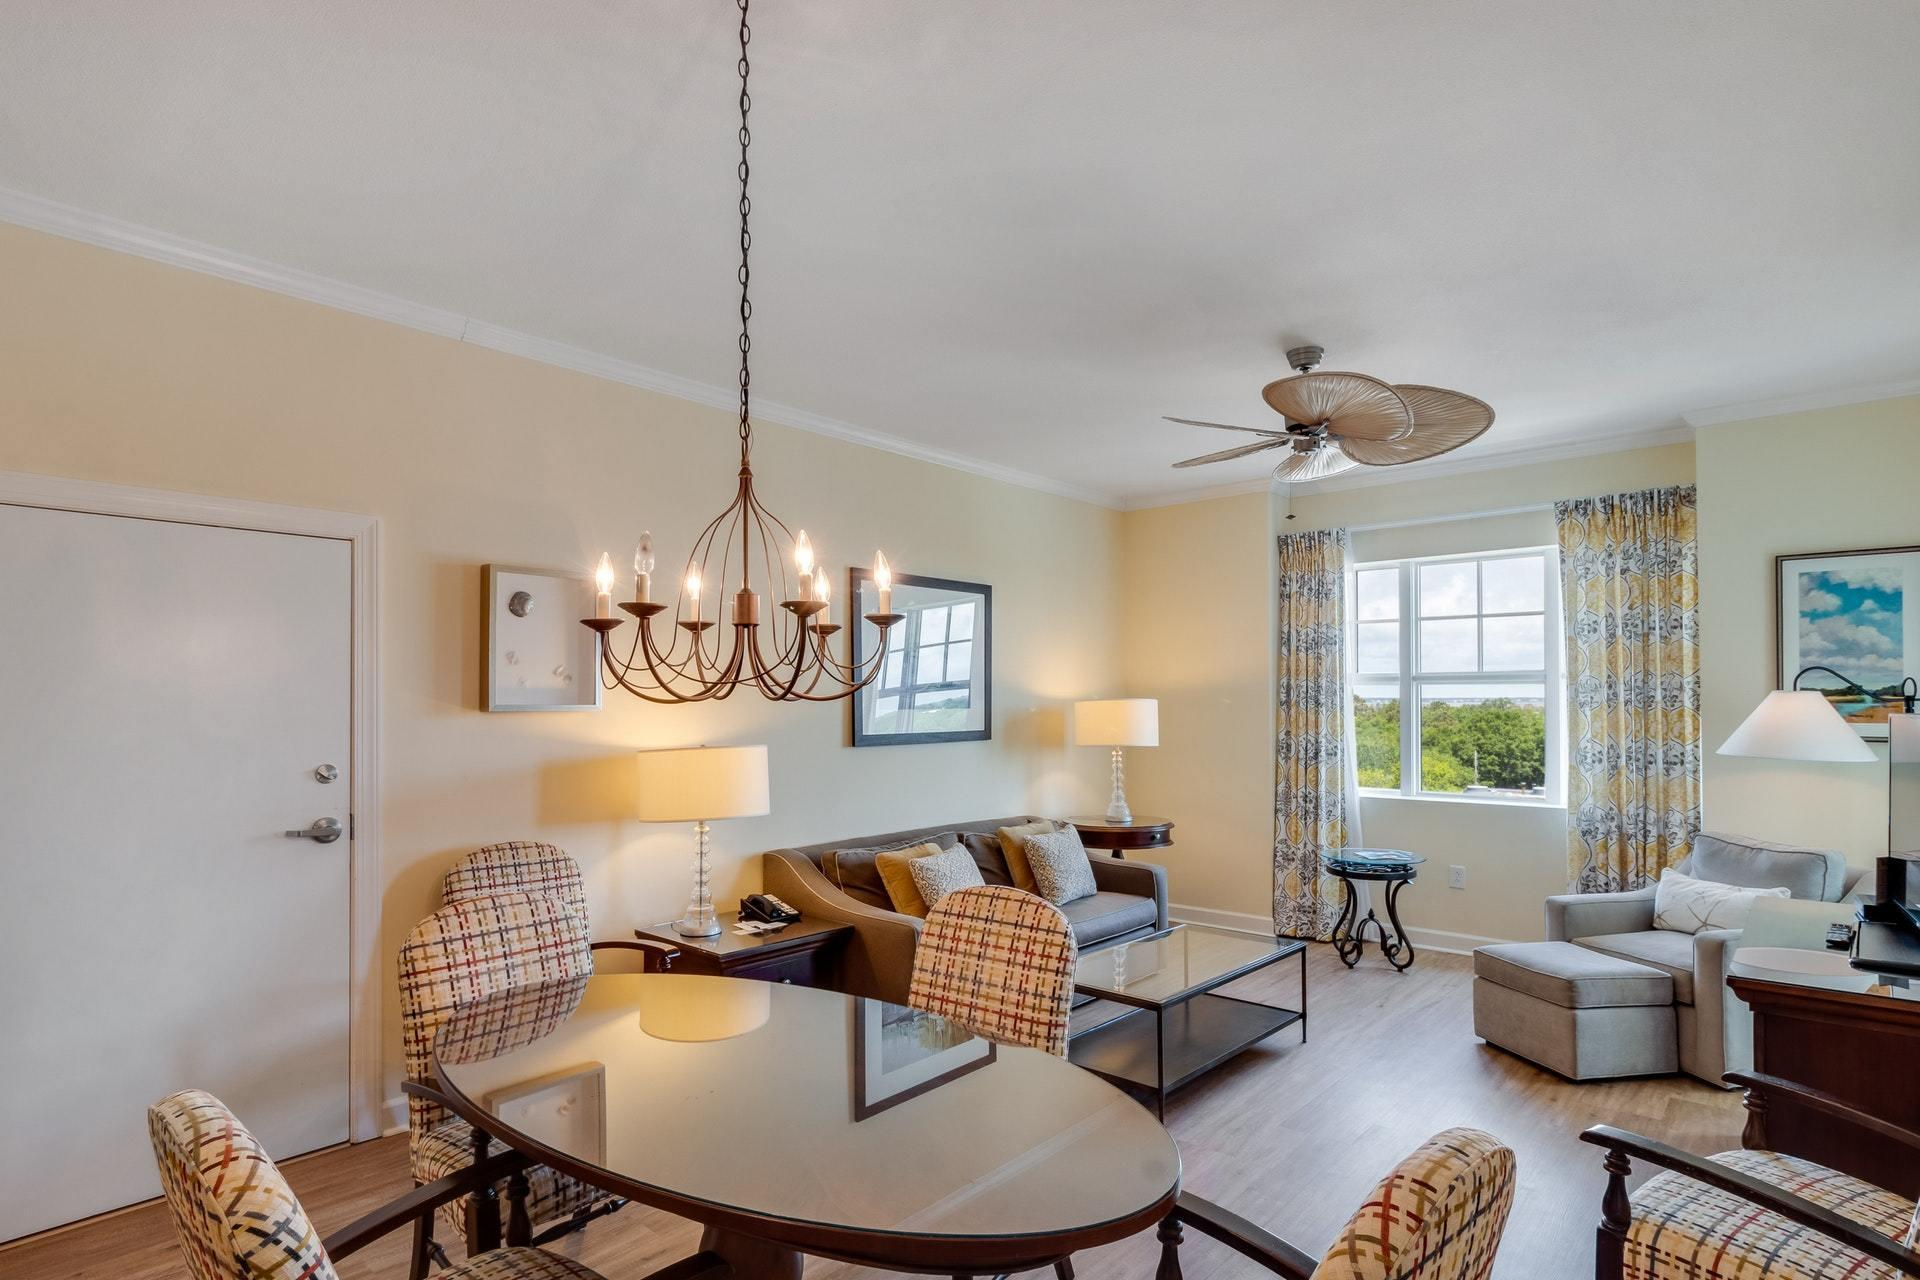 Wild Dunes Homes For Sale - 505/507 Village At Wild Dunes, Isle of Palms, SC - 27